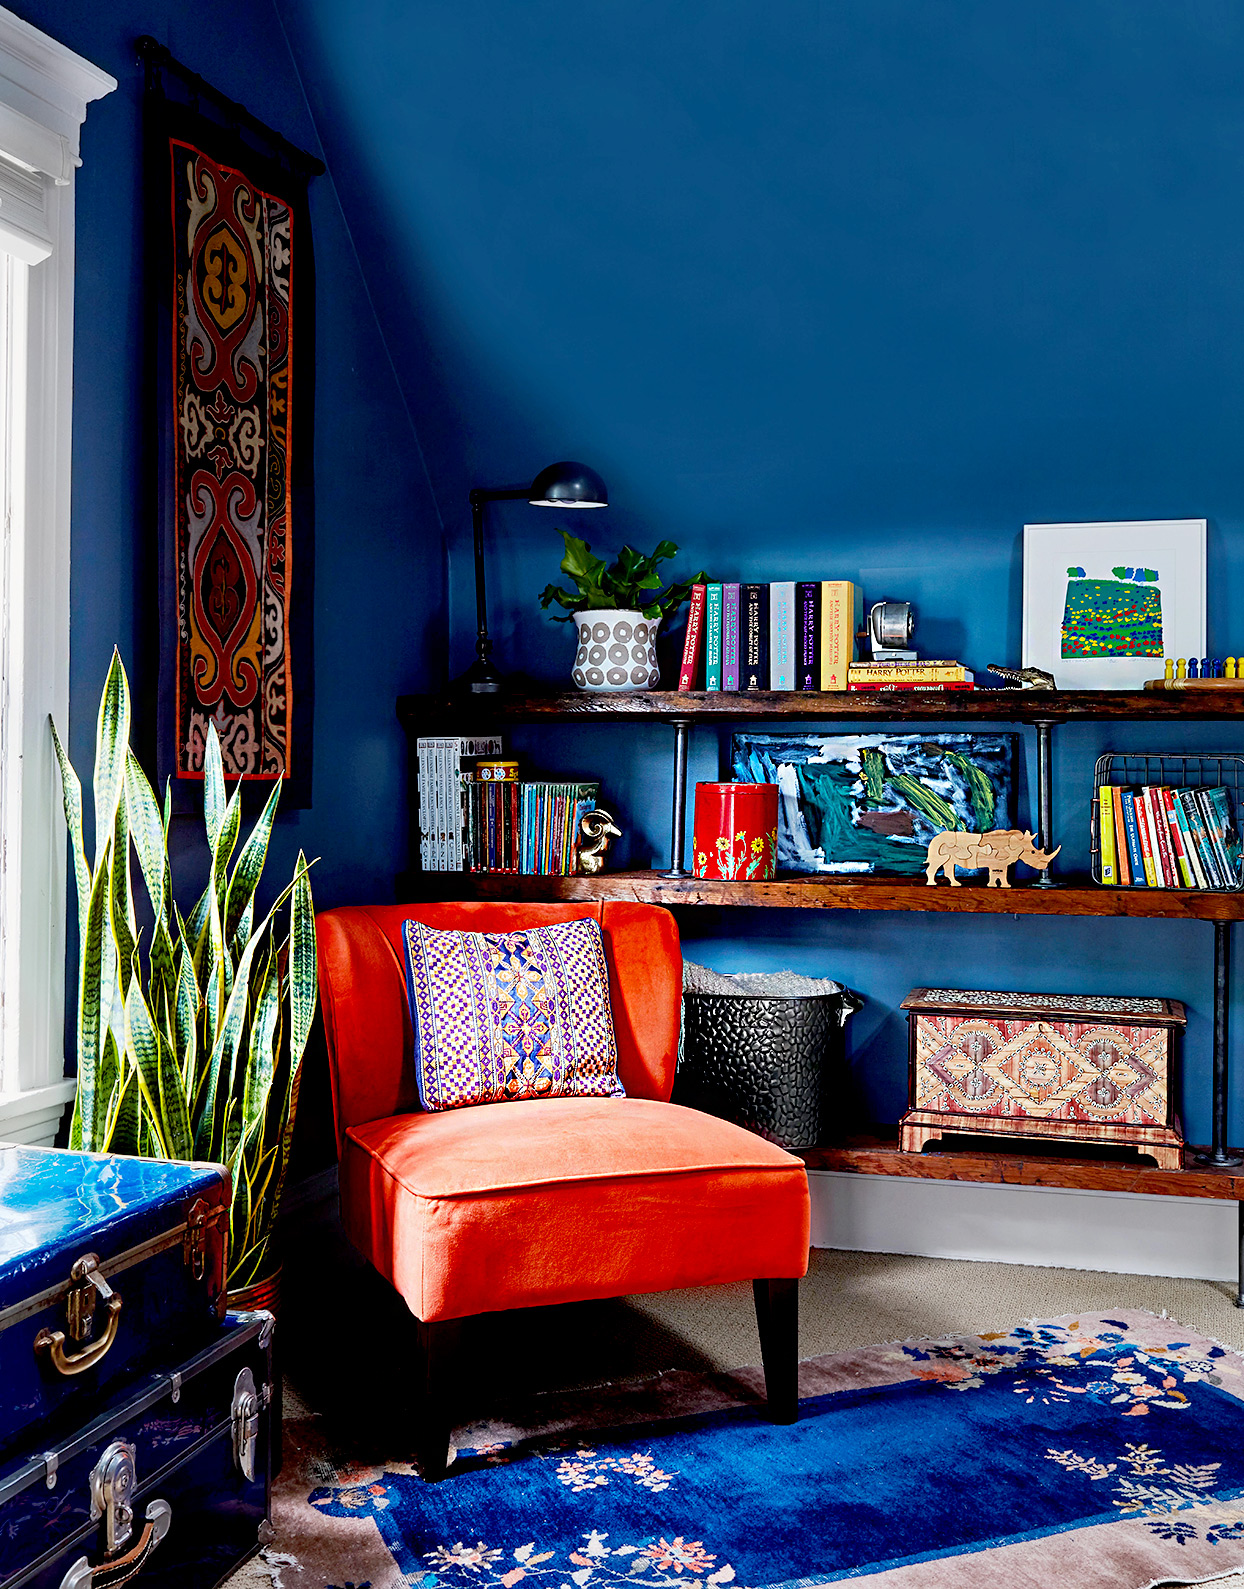 Dark blue walls with orange chair and shelving